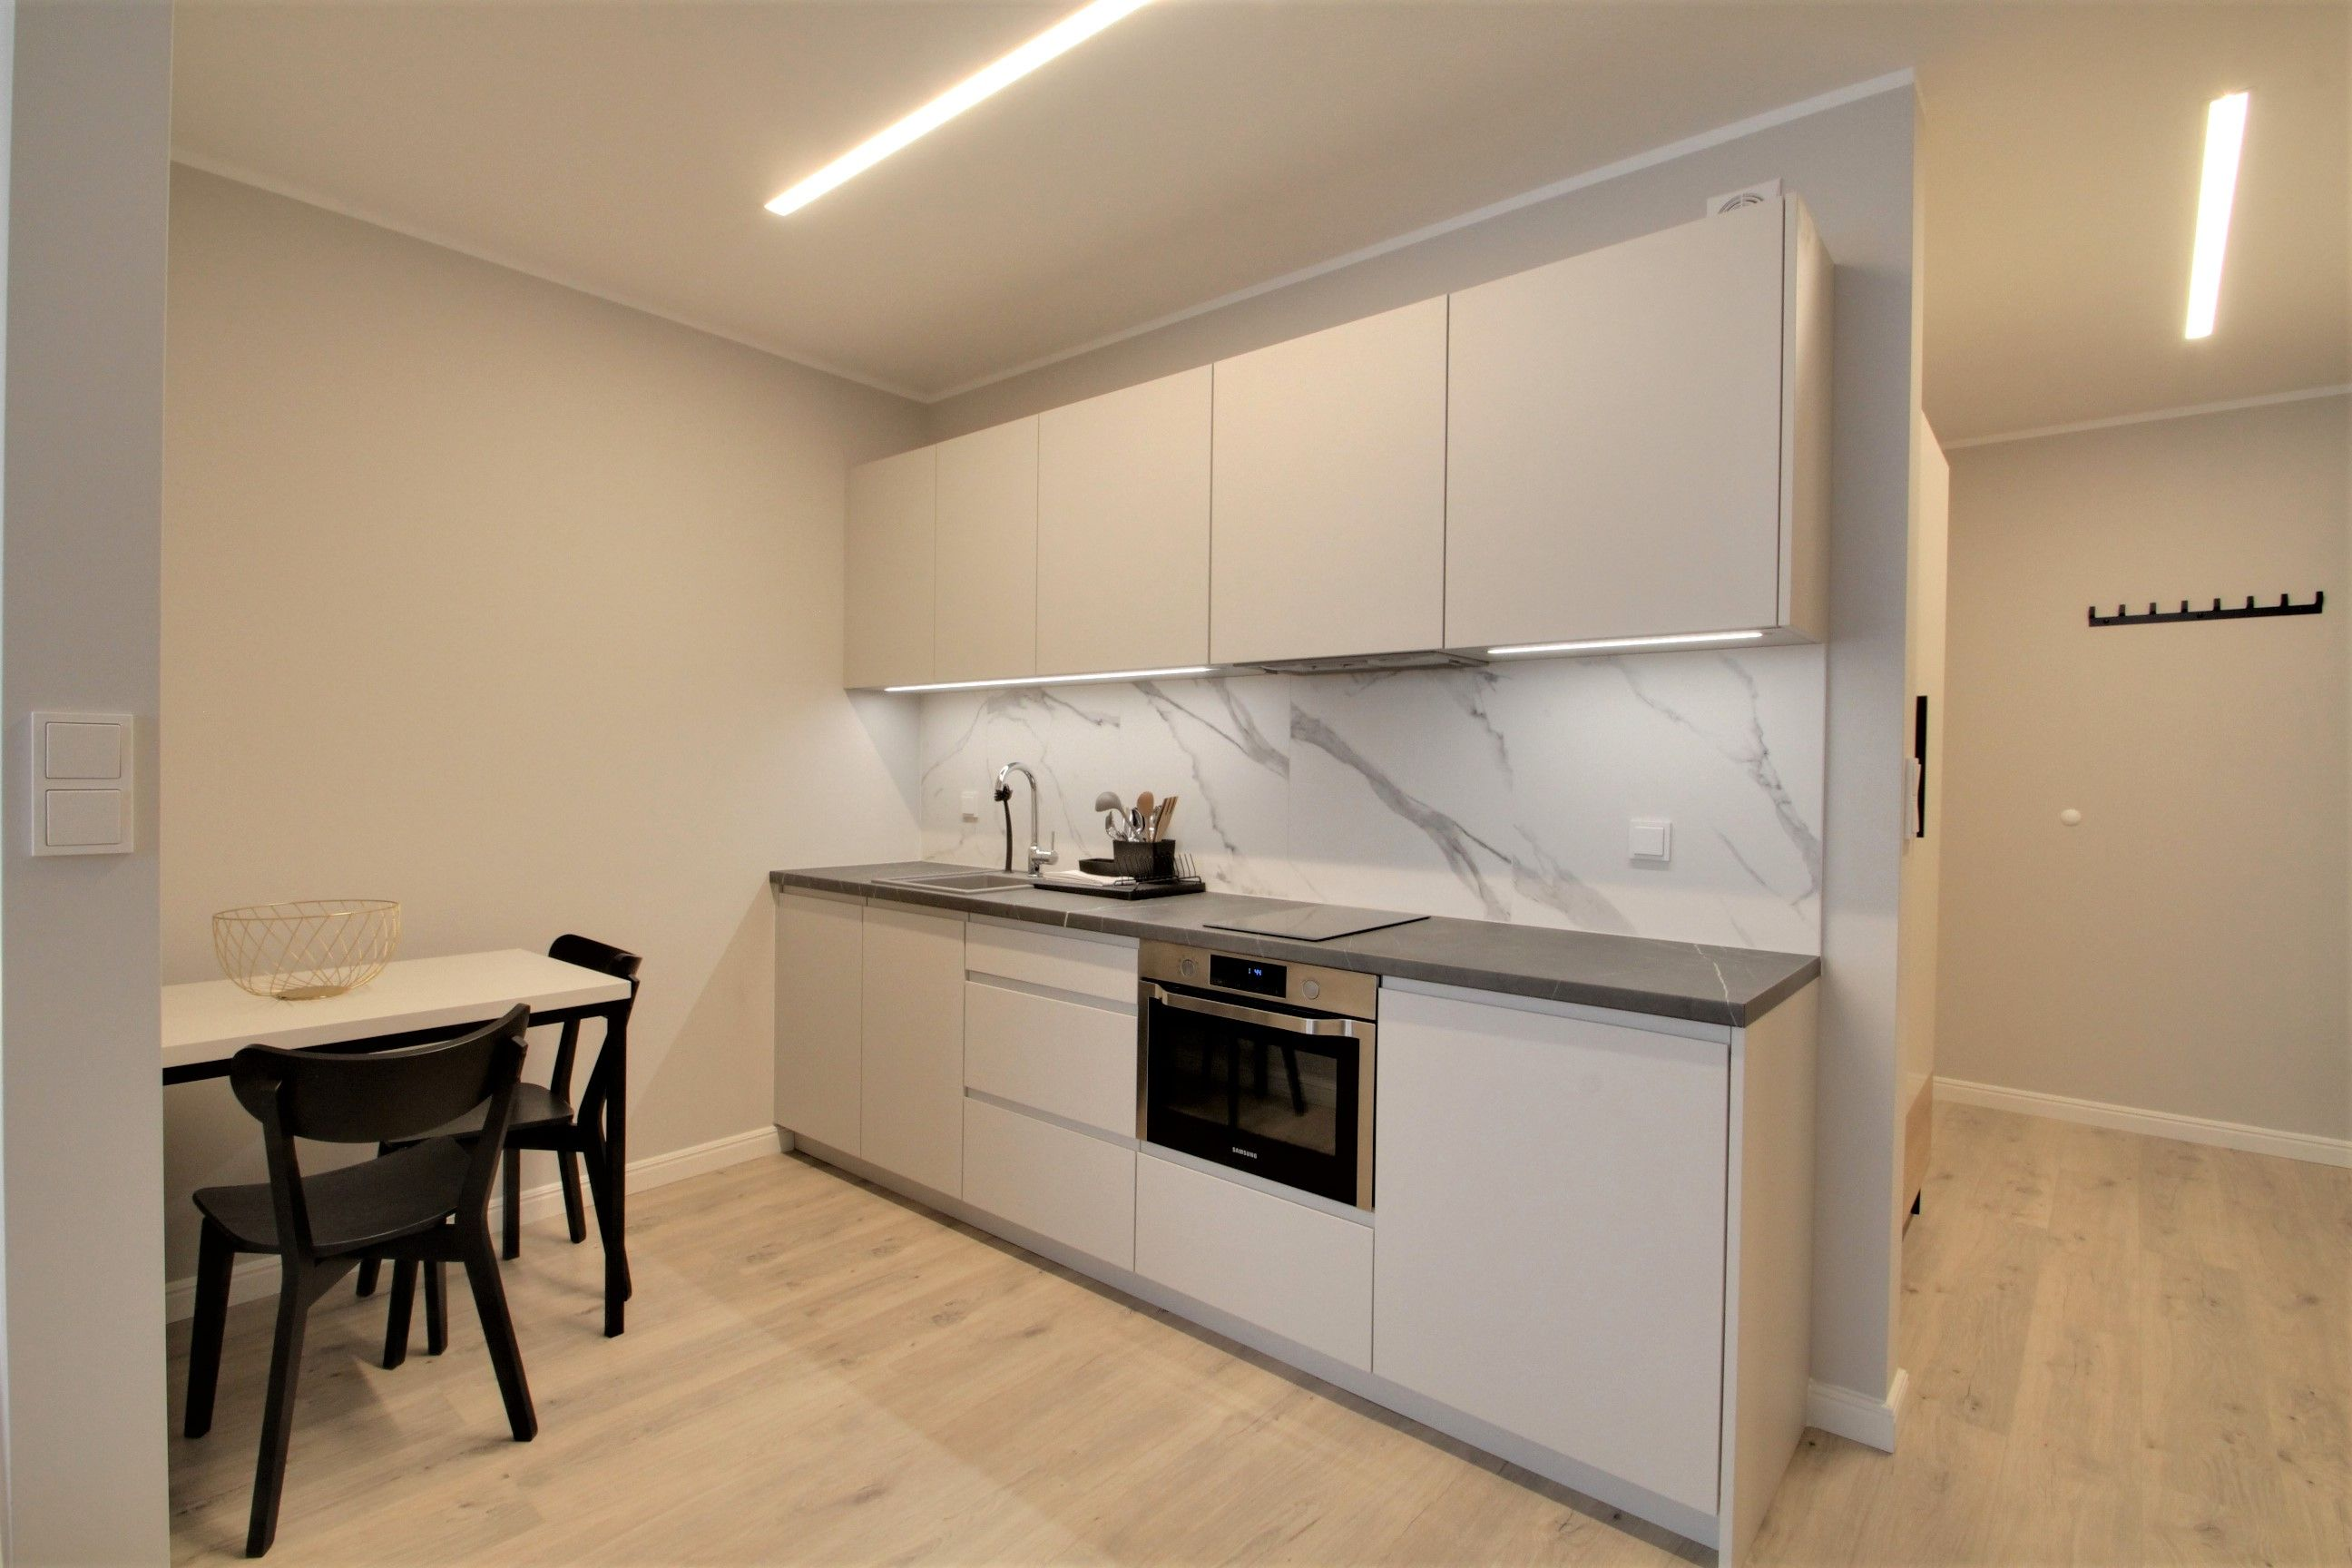 Studio - Medium apartment to rent in Warsaw UPR-A-037-2